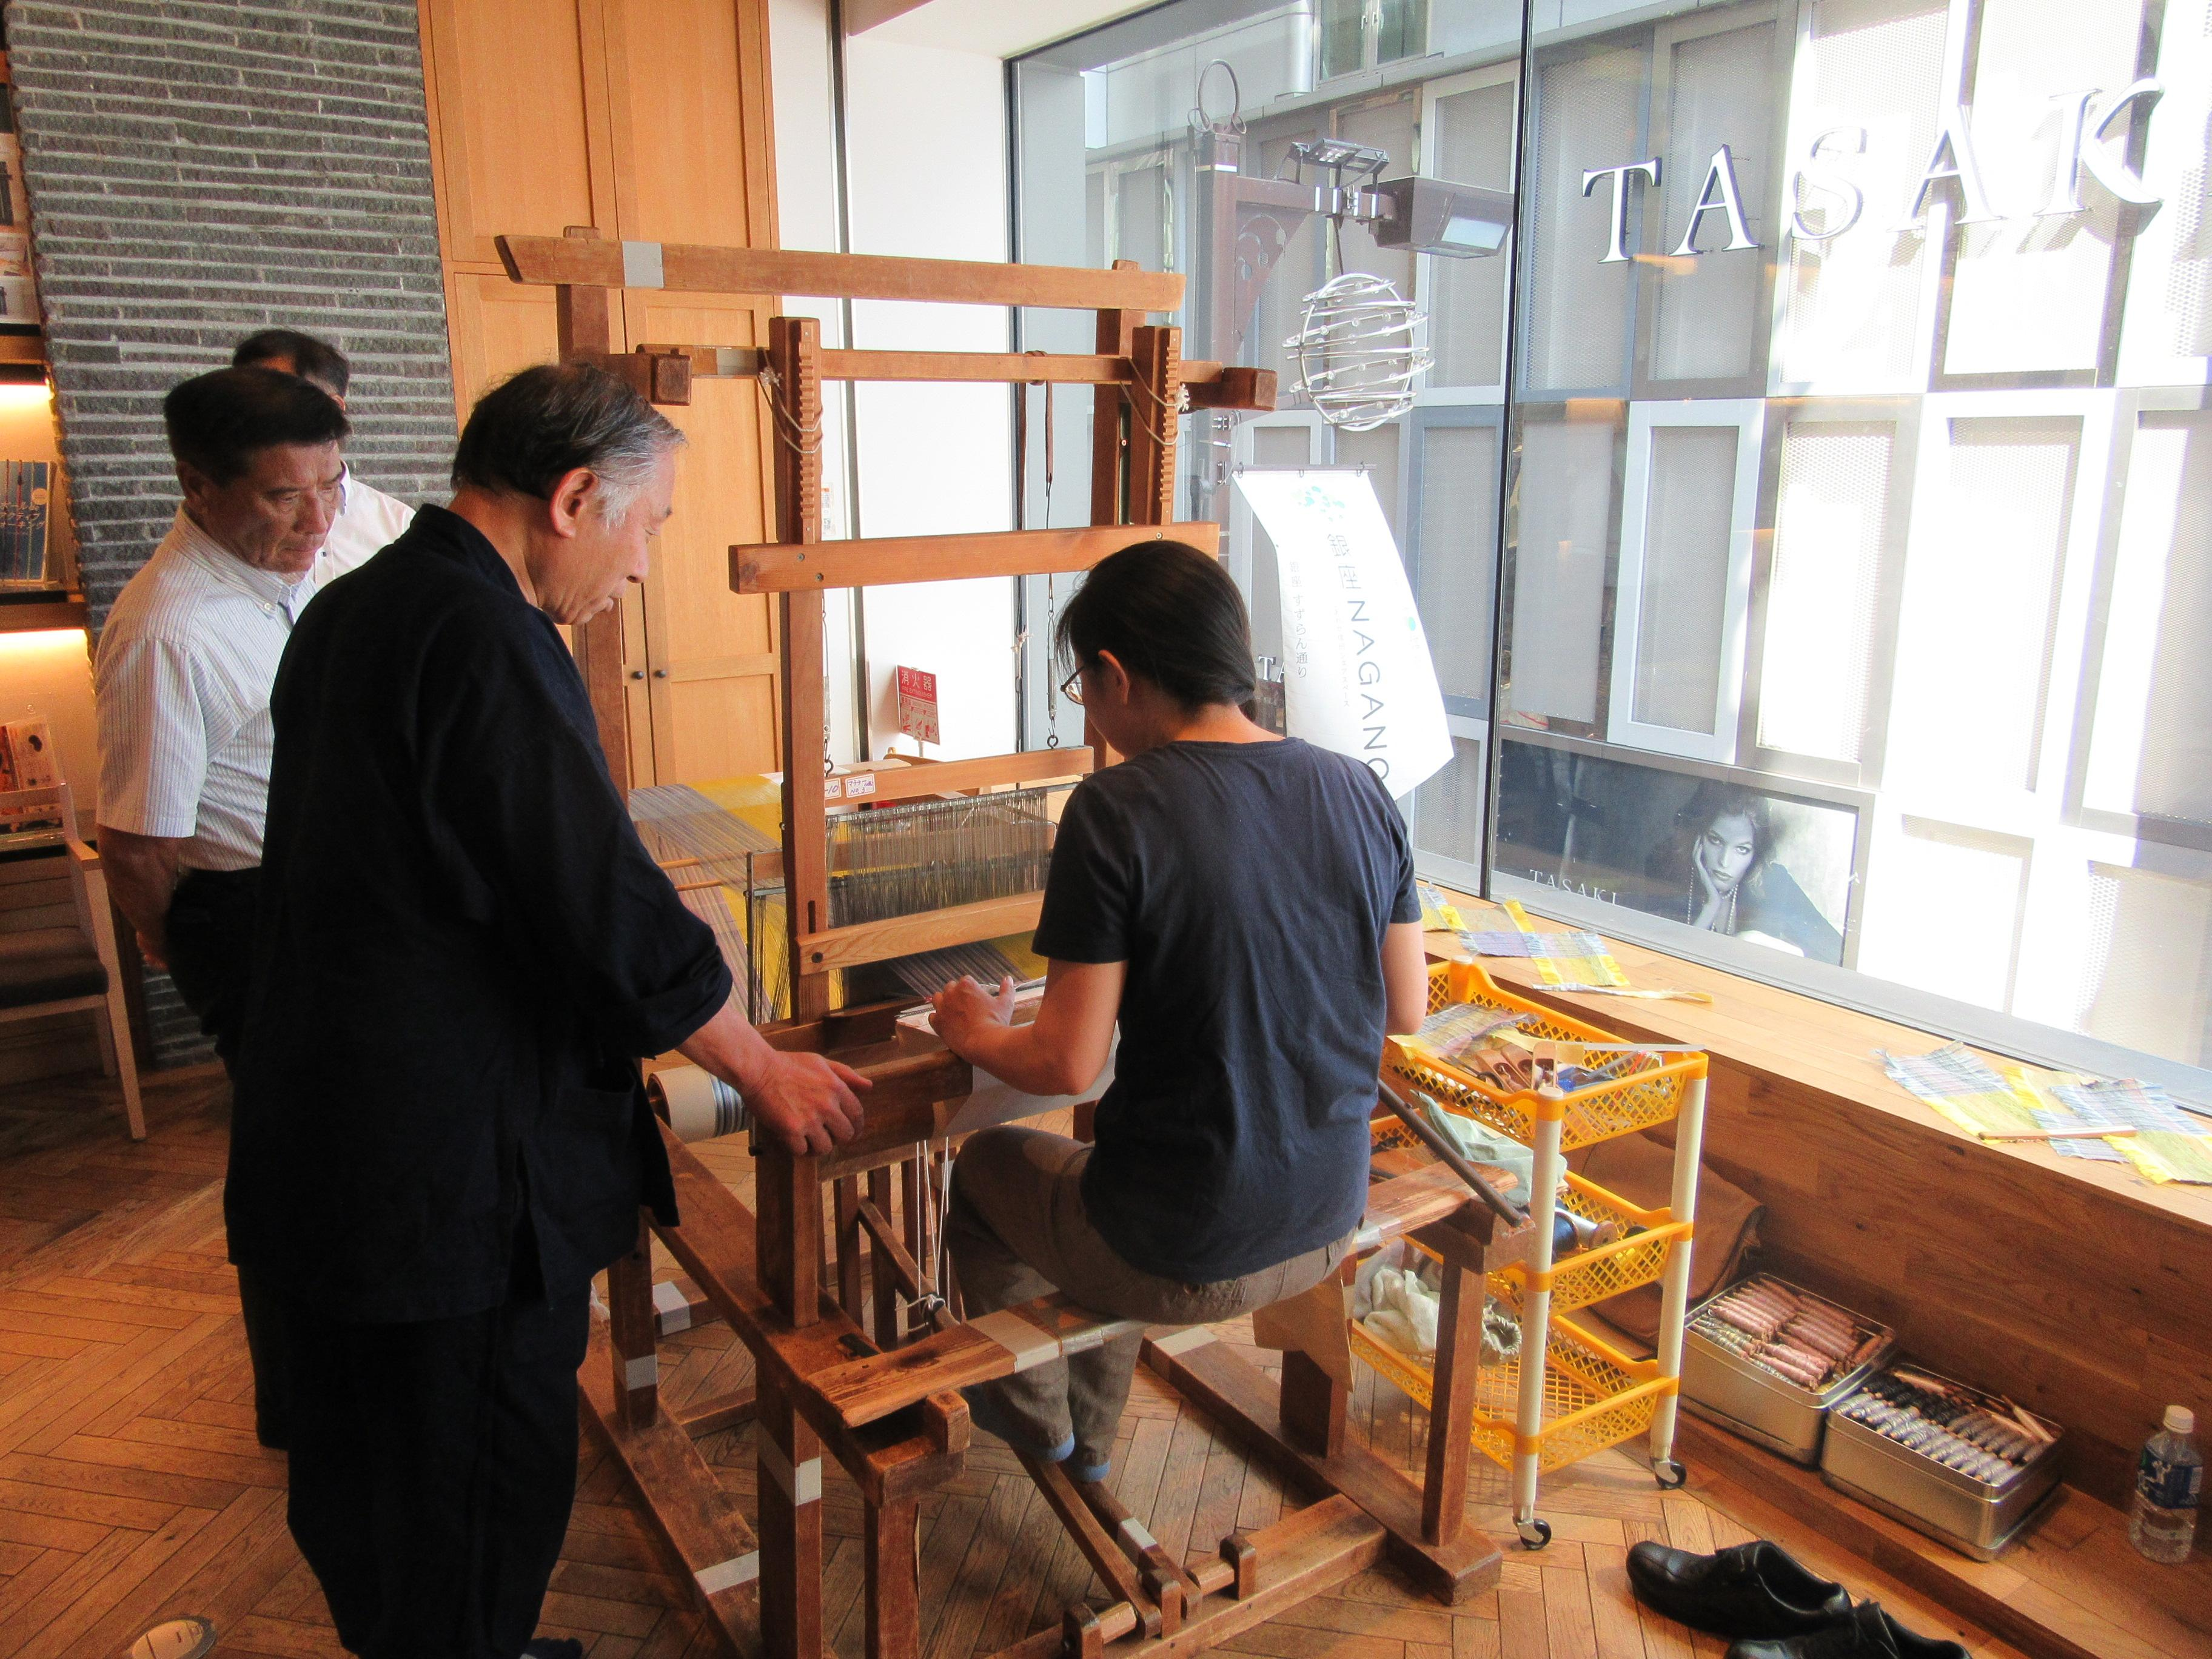 The treadle loom used from ancient times in Japan